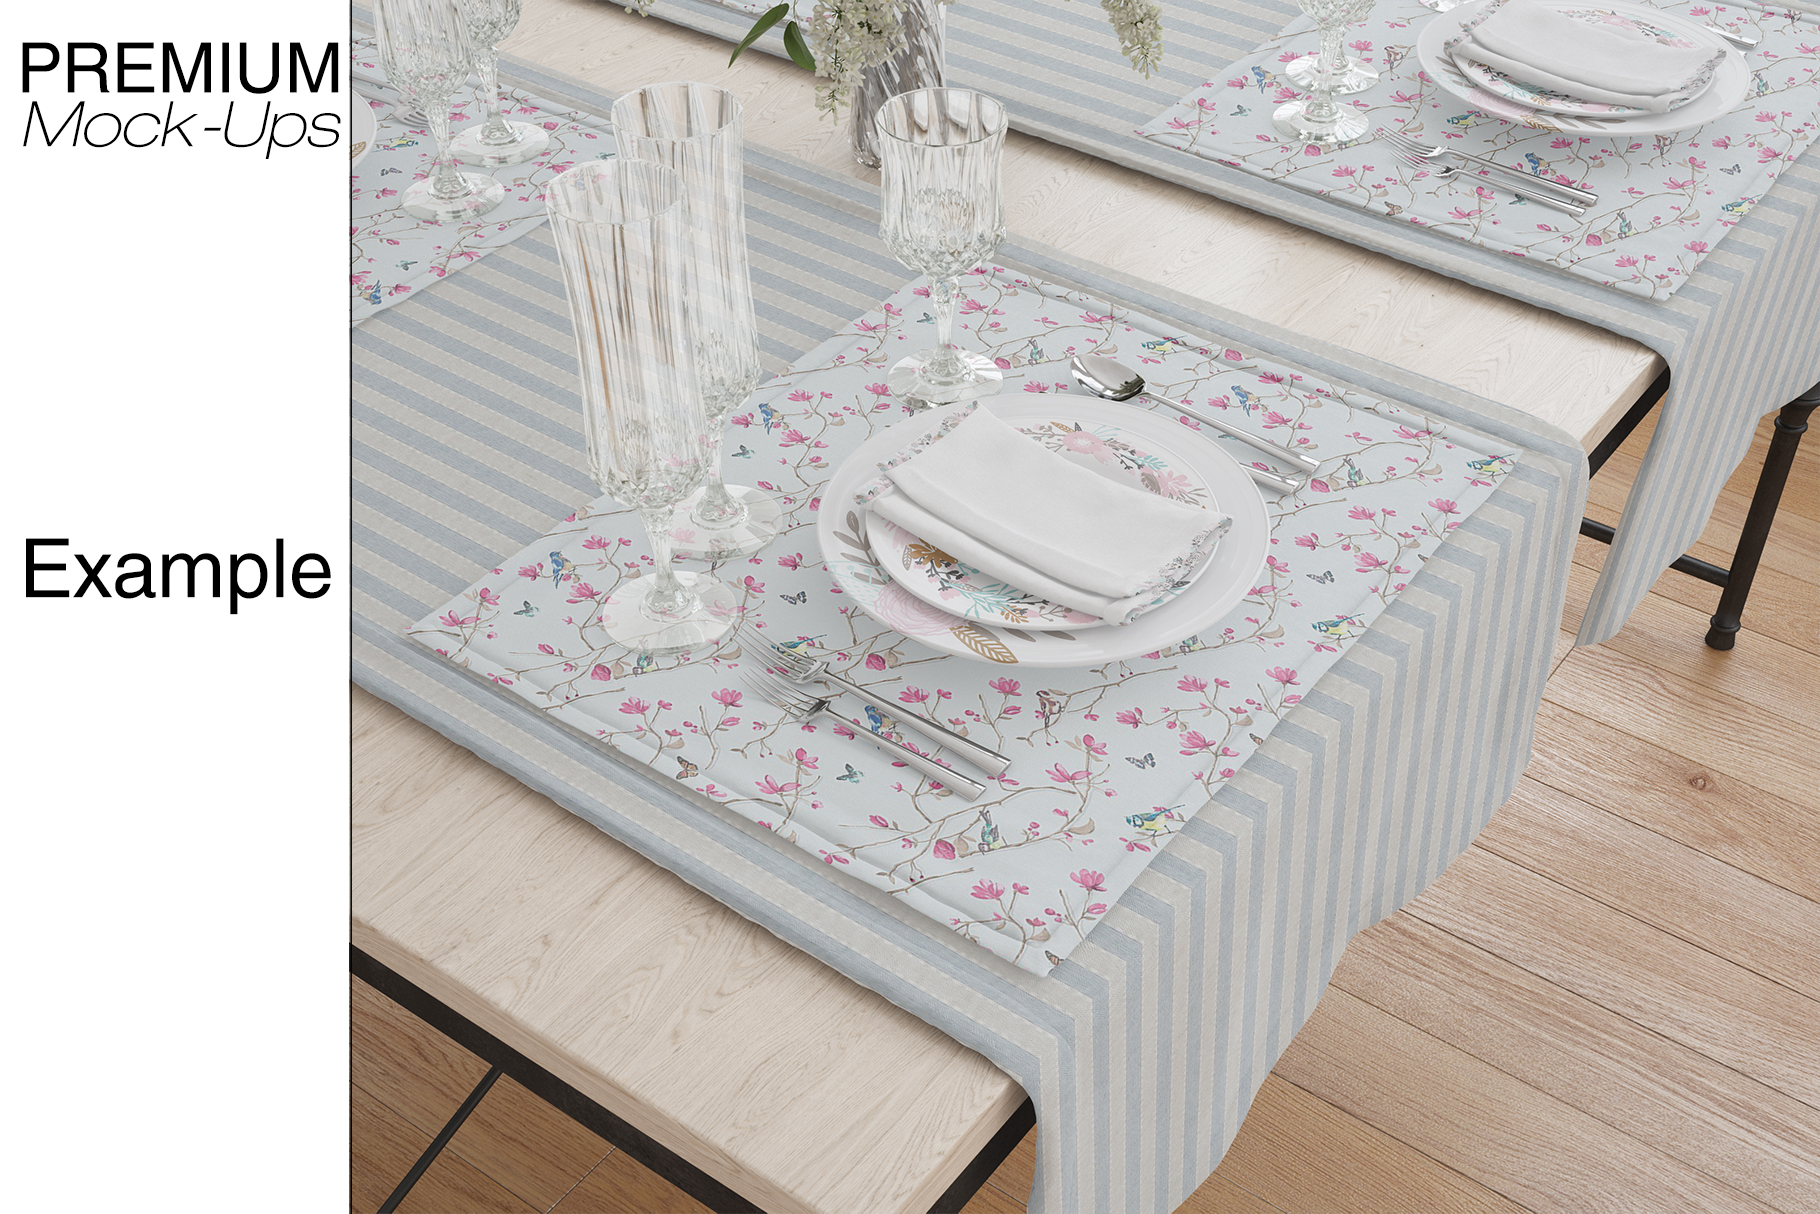 Tablecloth, Runner, Napkins & Plates example image 15